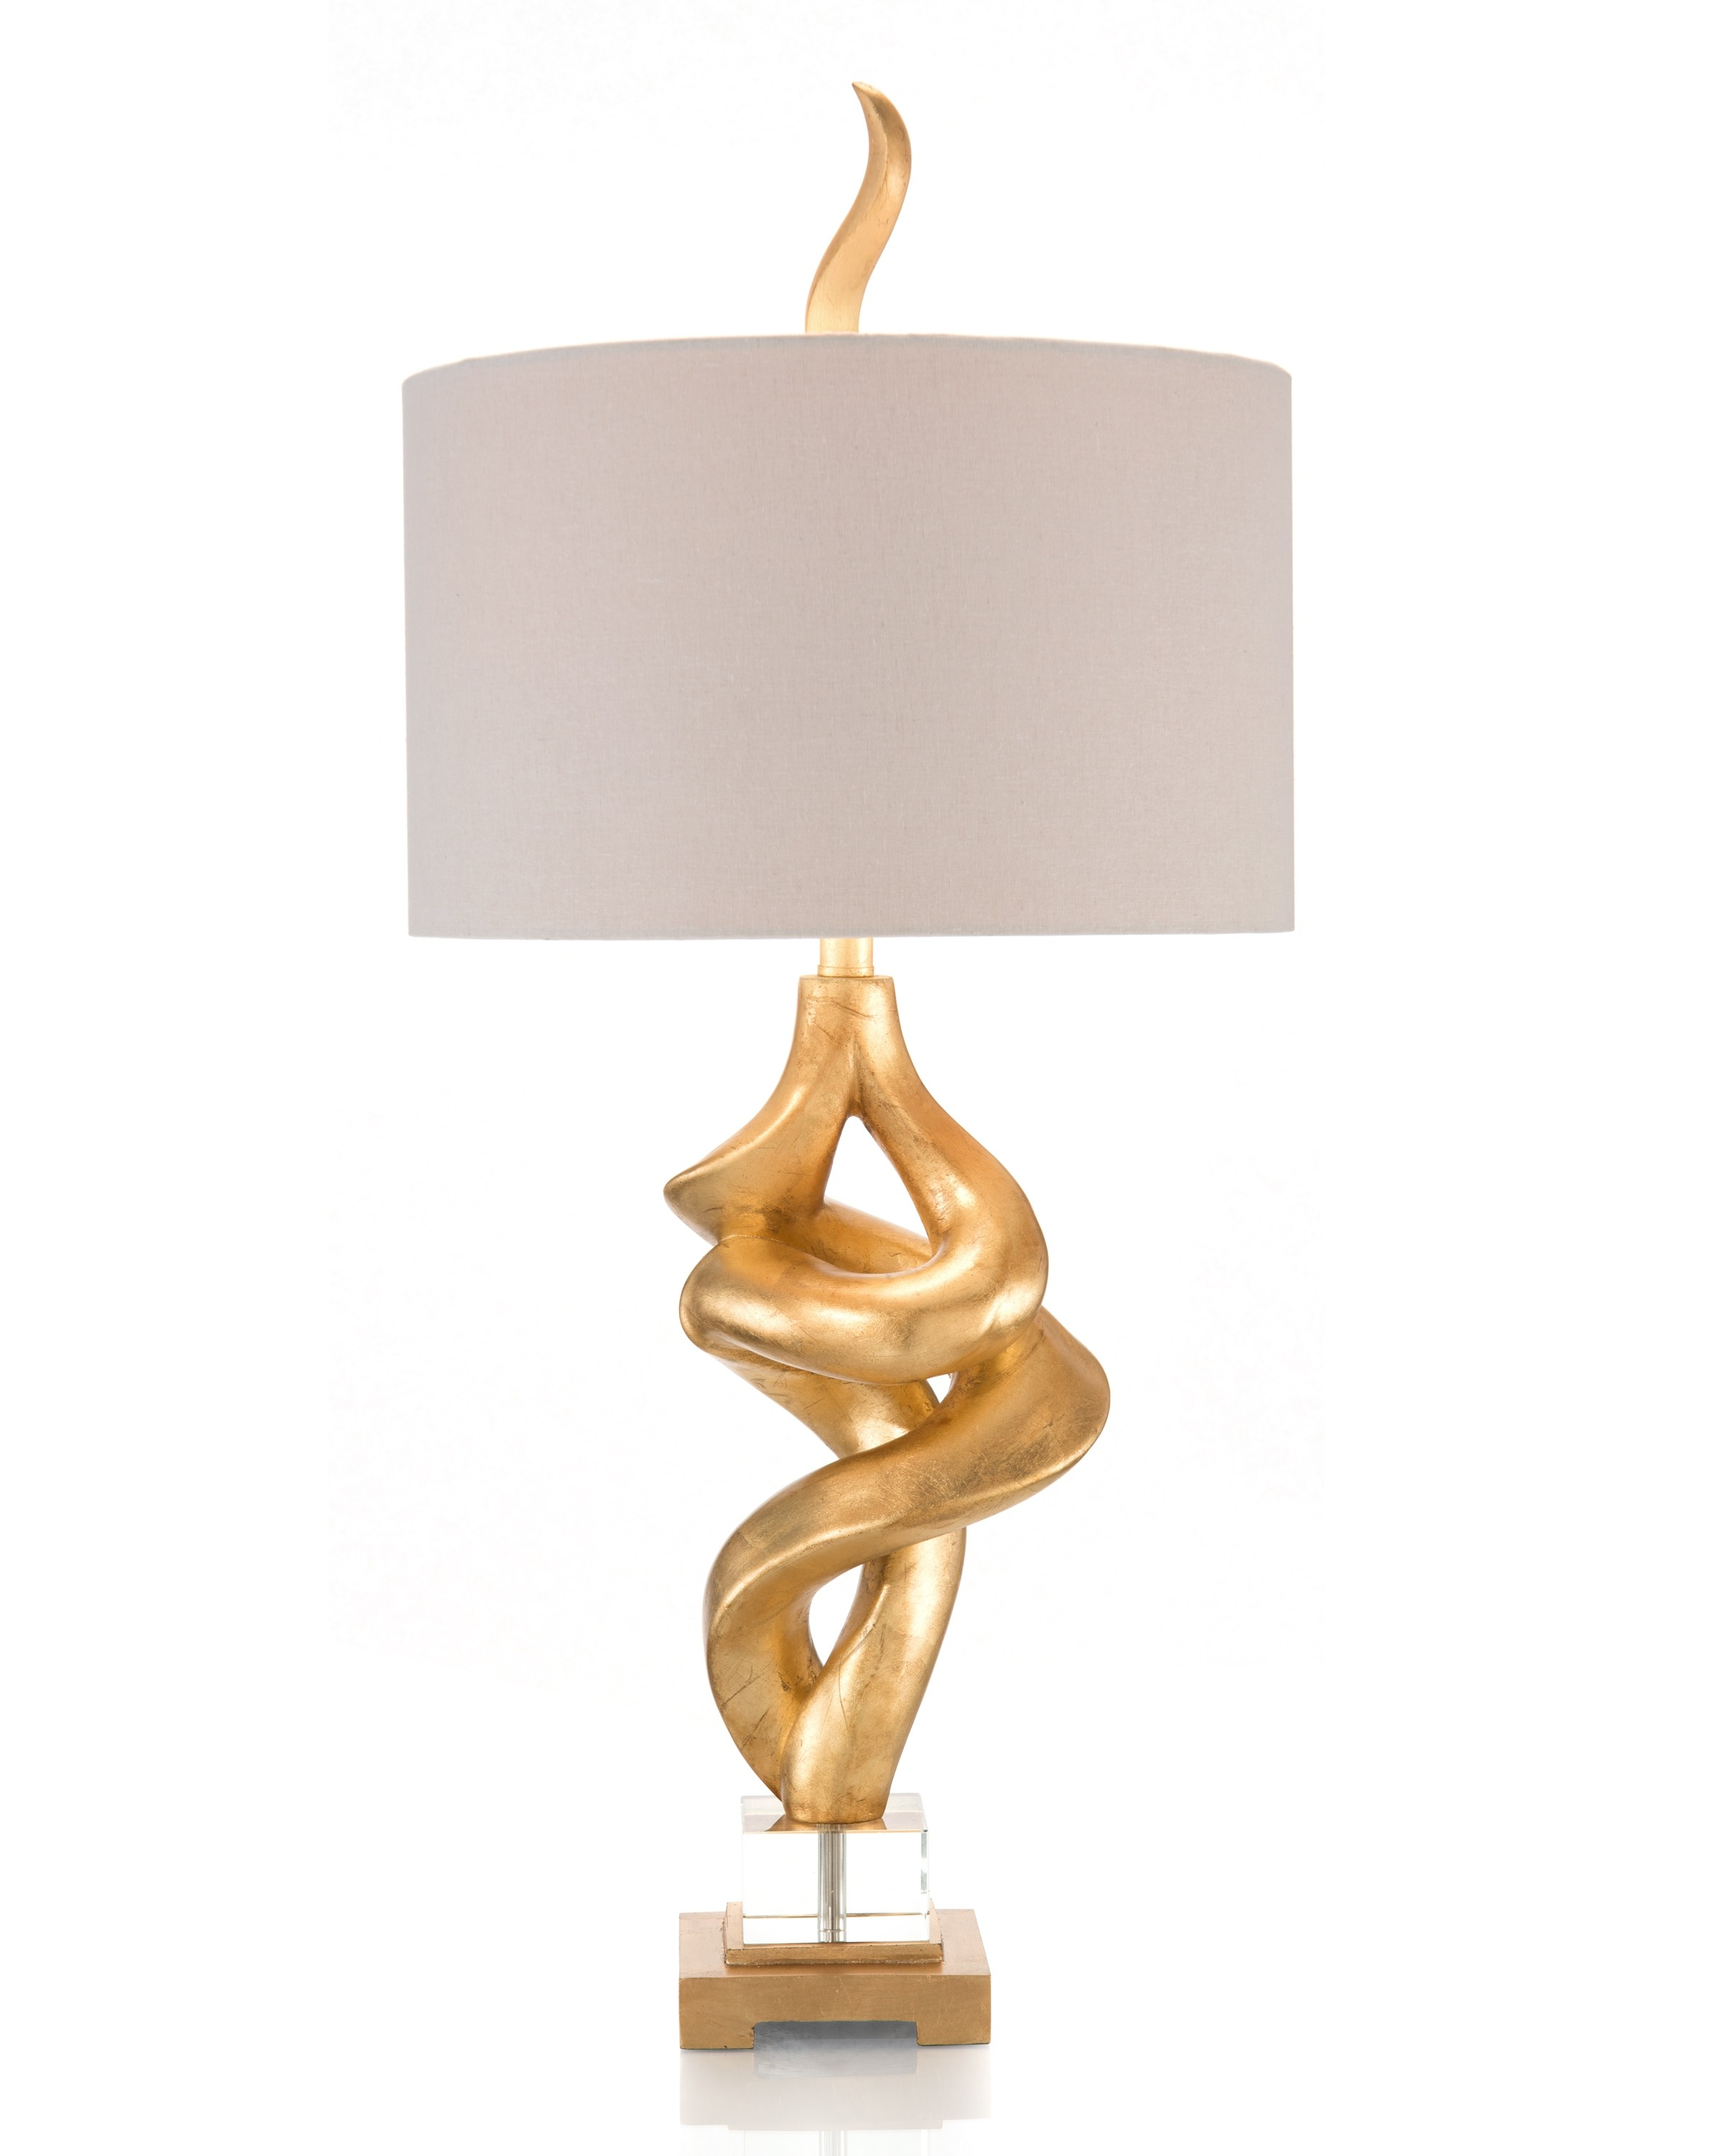 All Twisted Hand-Gilded Sculpture Accent Lamp